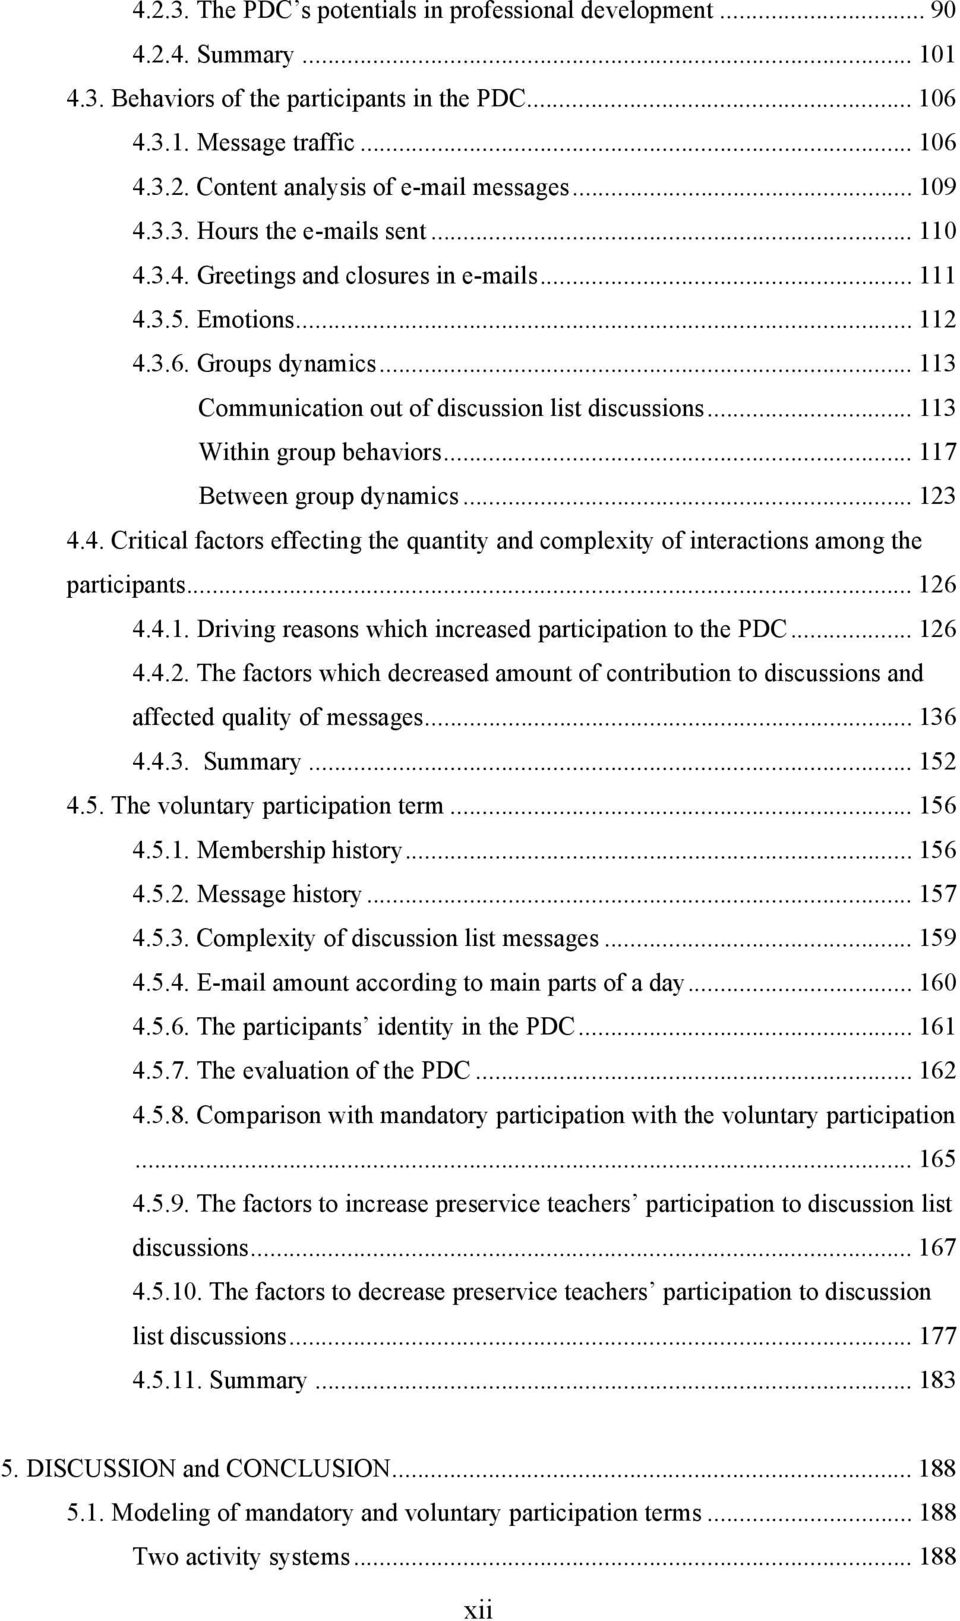 .. 113 Within group behaviors... 117 Between group dynamics... 123 4.4. Critical factors effecting the quantity and complexity of interactions among the participants... 126 4.4.1. Driving reasons which increased participation to the PDC.